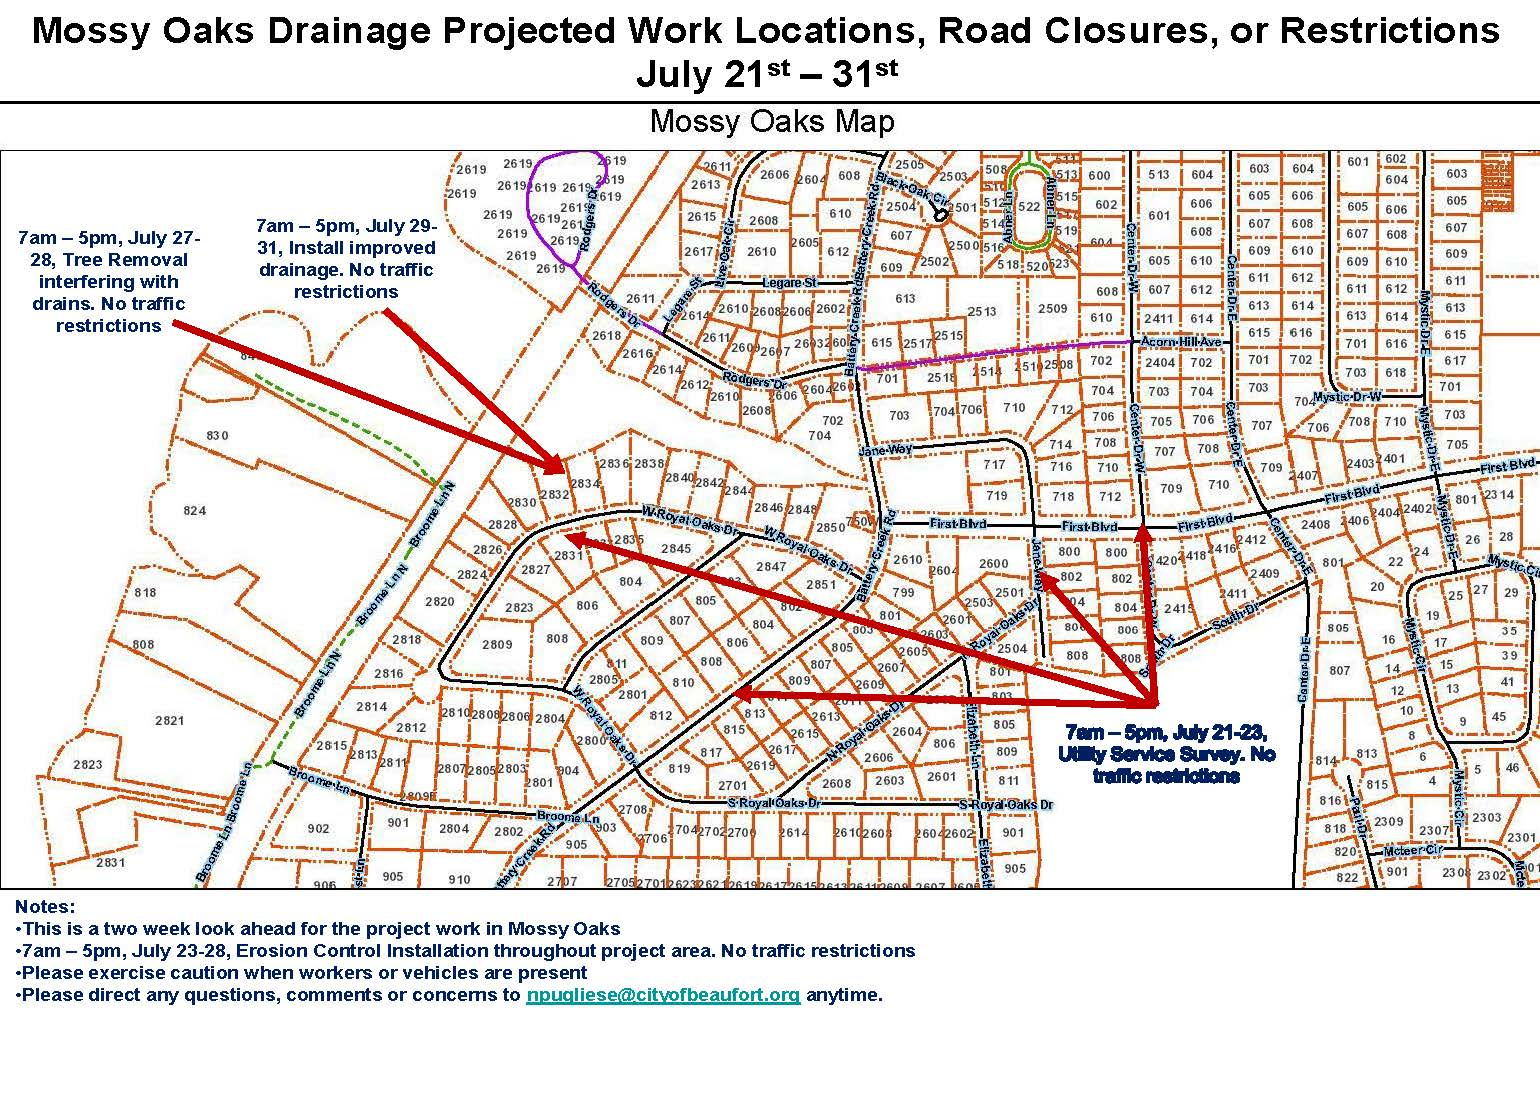 Mossy Oaks Drainage Update 22 July 2020